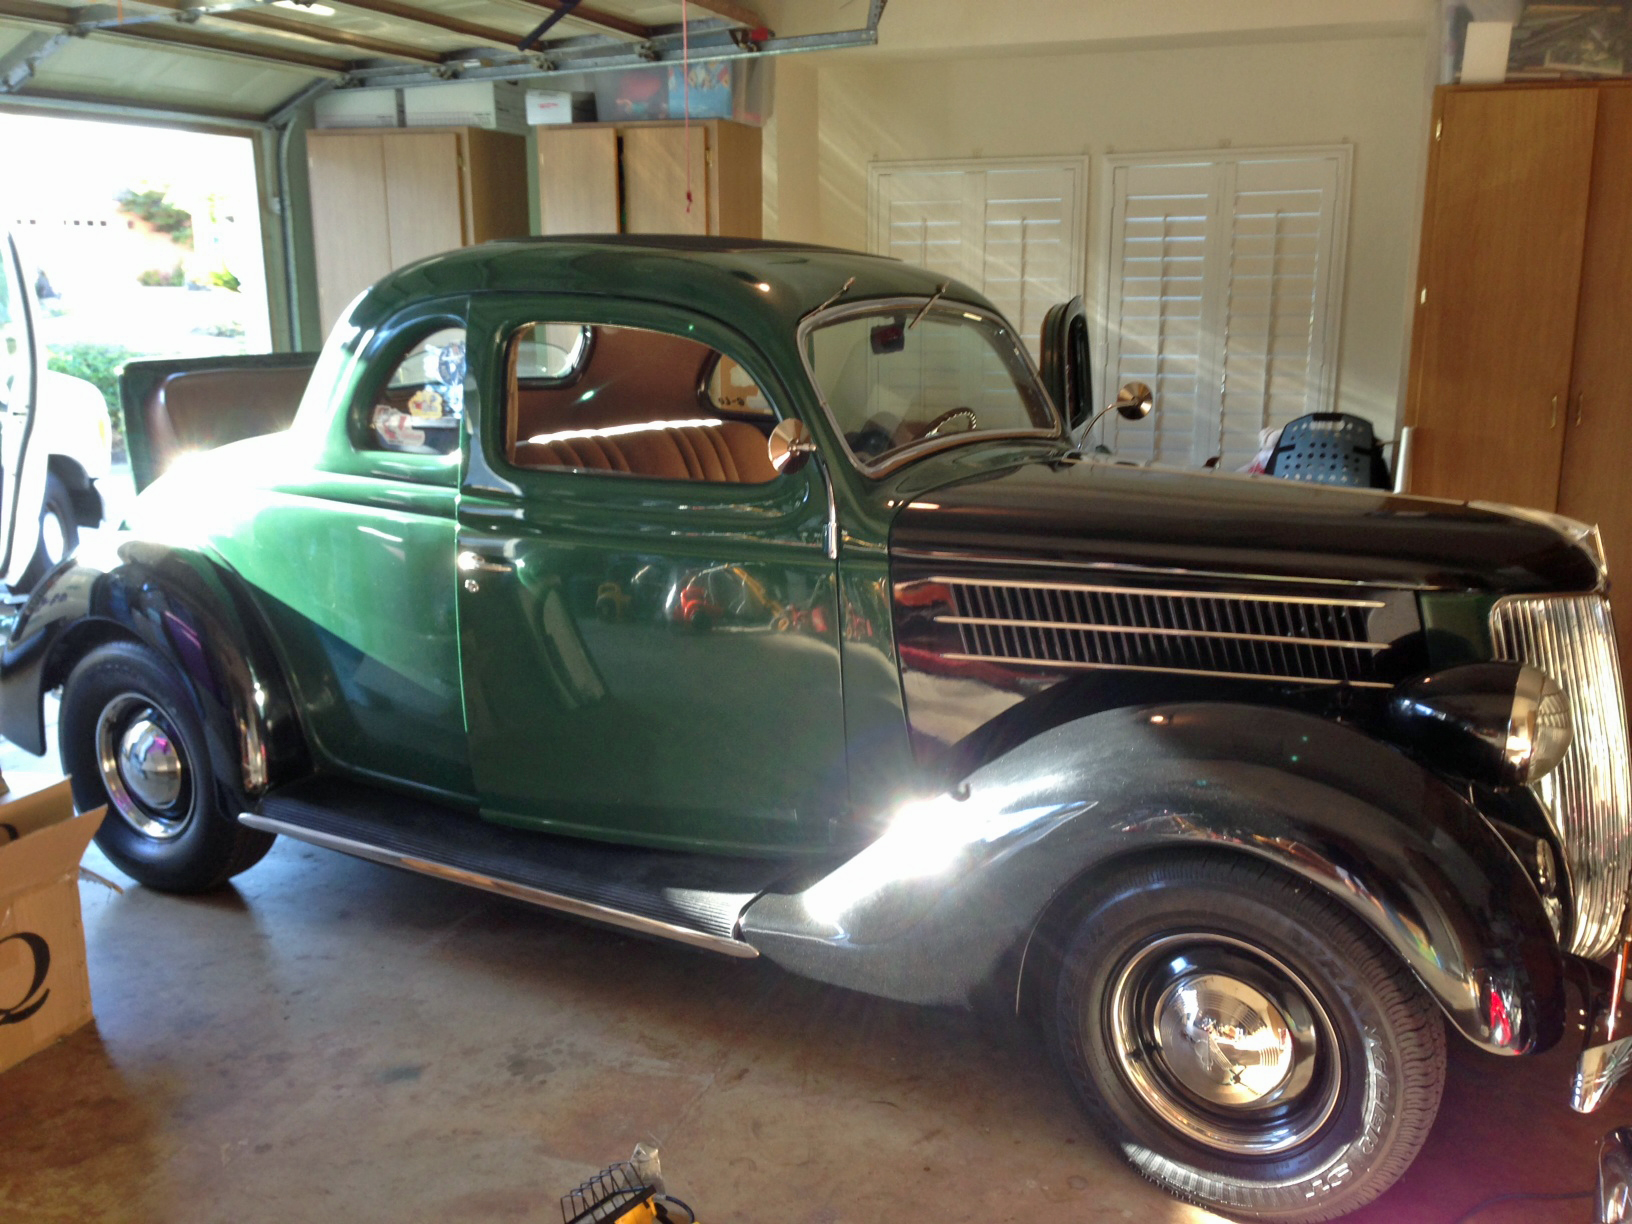 39 Ford Coupe-all new glass and window lifts